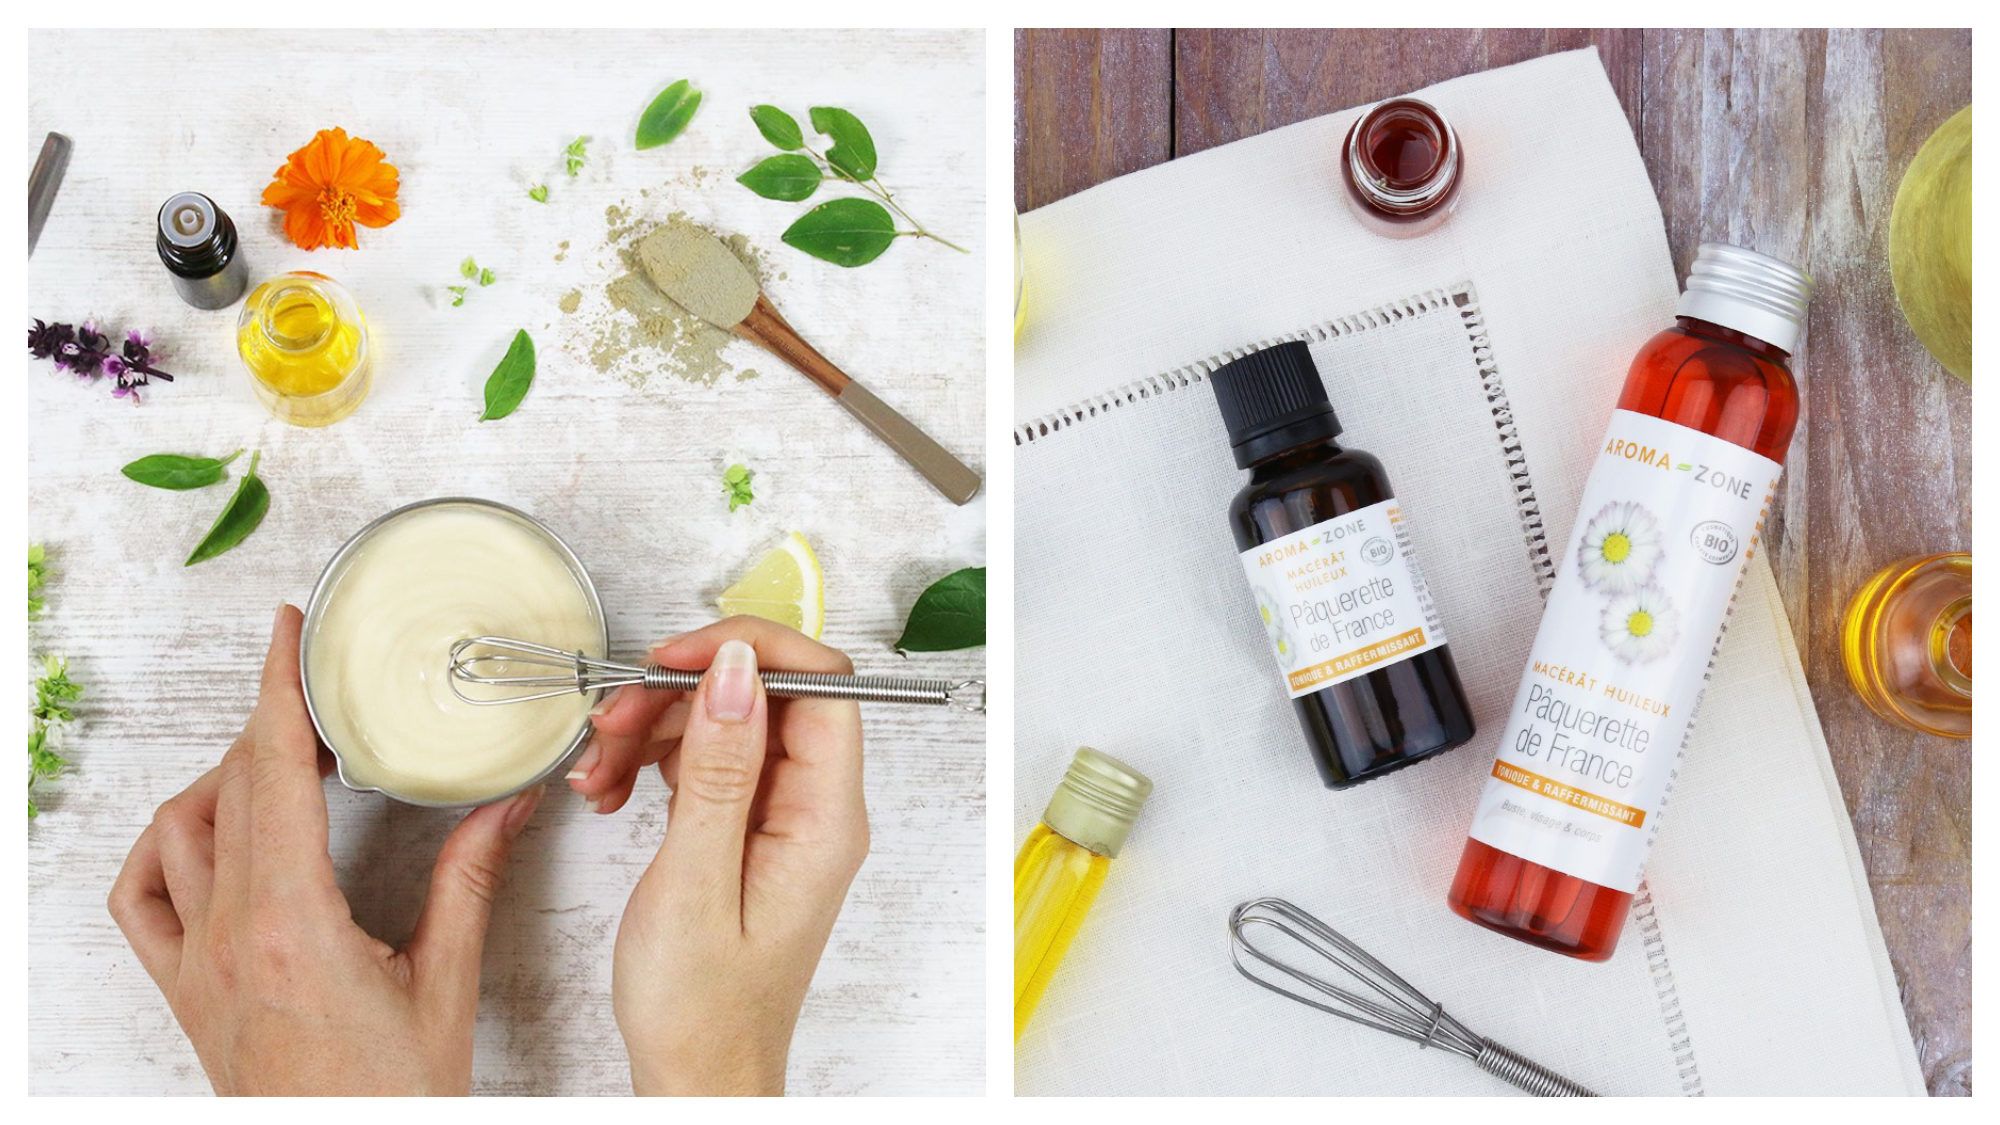 Parisian organic beauty store Aroma Zone's DIY products being mixed by a woman (left) and bottles of oils and ointments laid out on a wooden table (right).